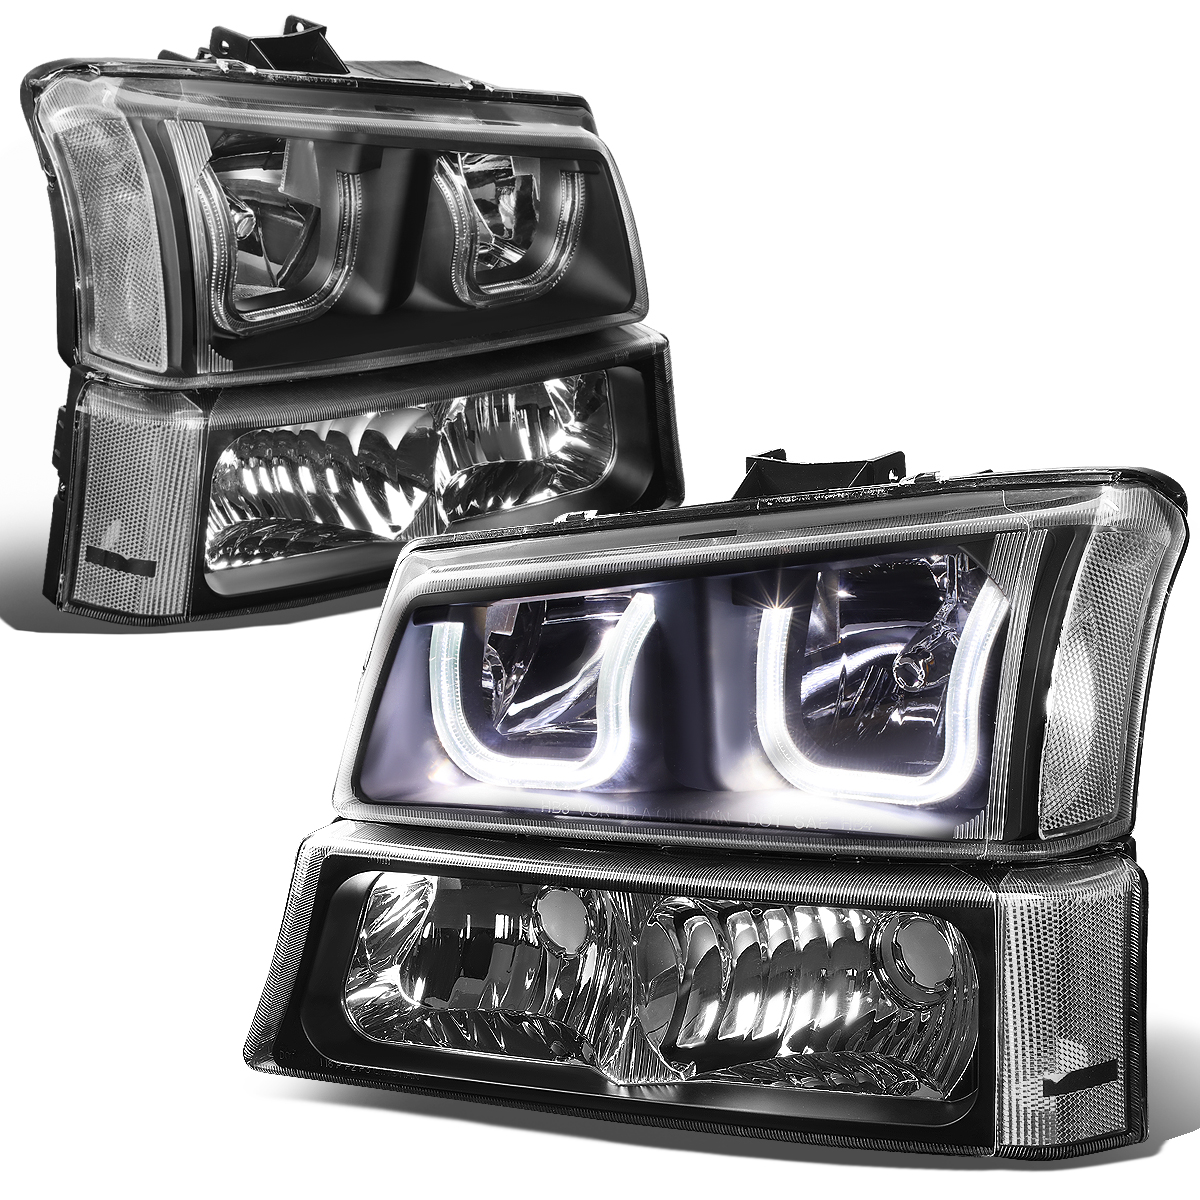 0306 Chevy SilveradoAvalanche LED UHalo Headlight  Bumper